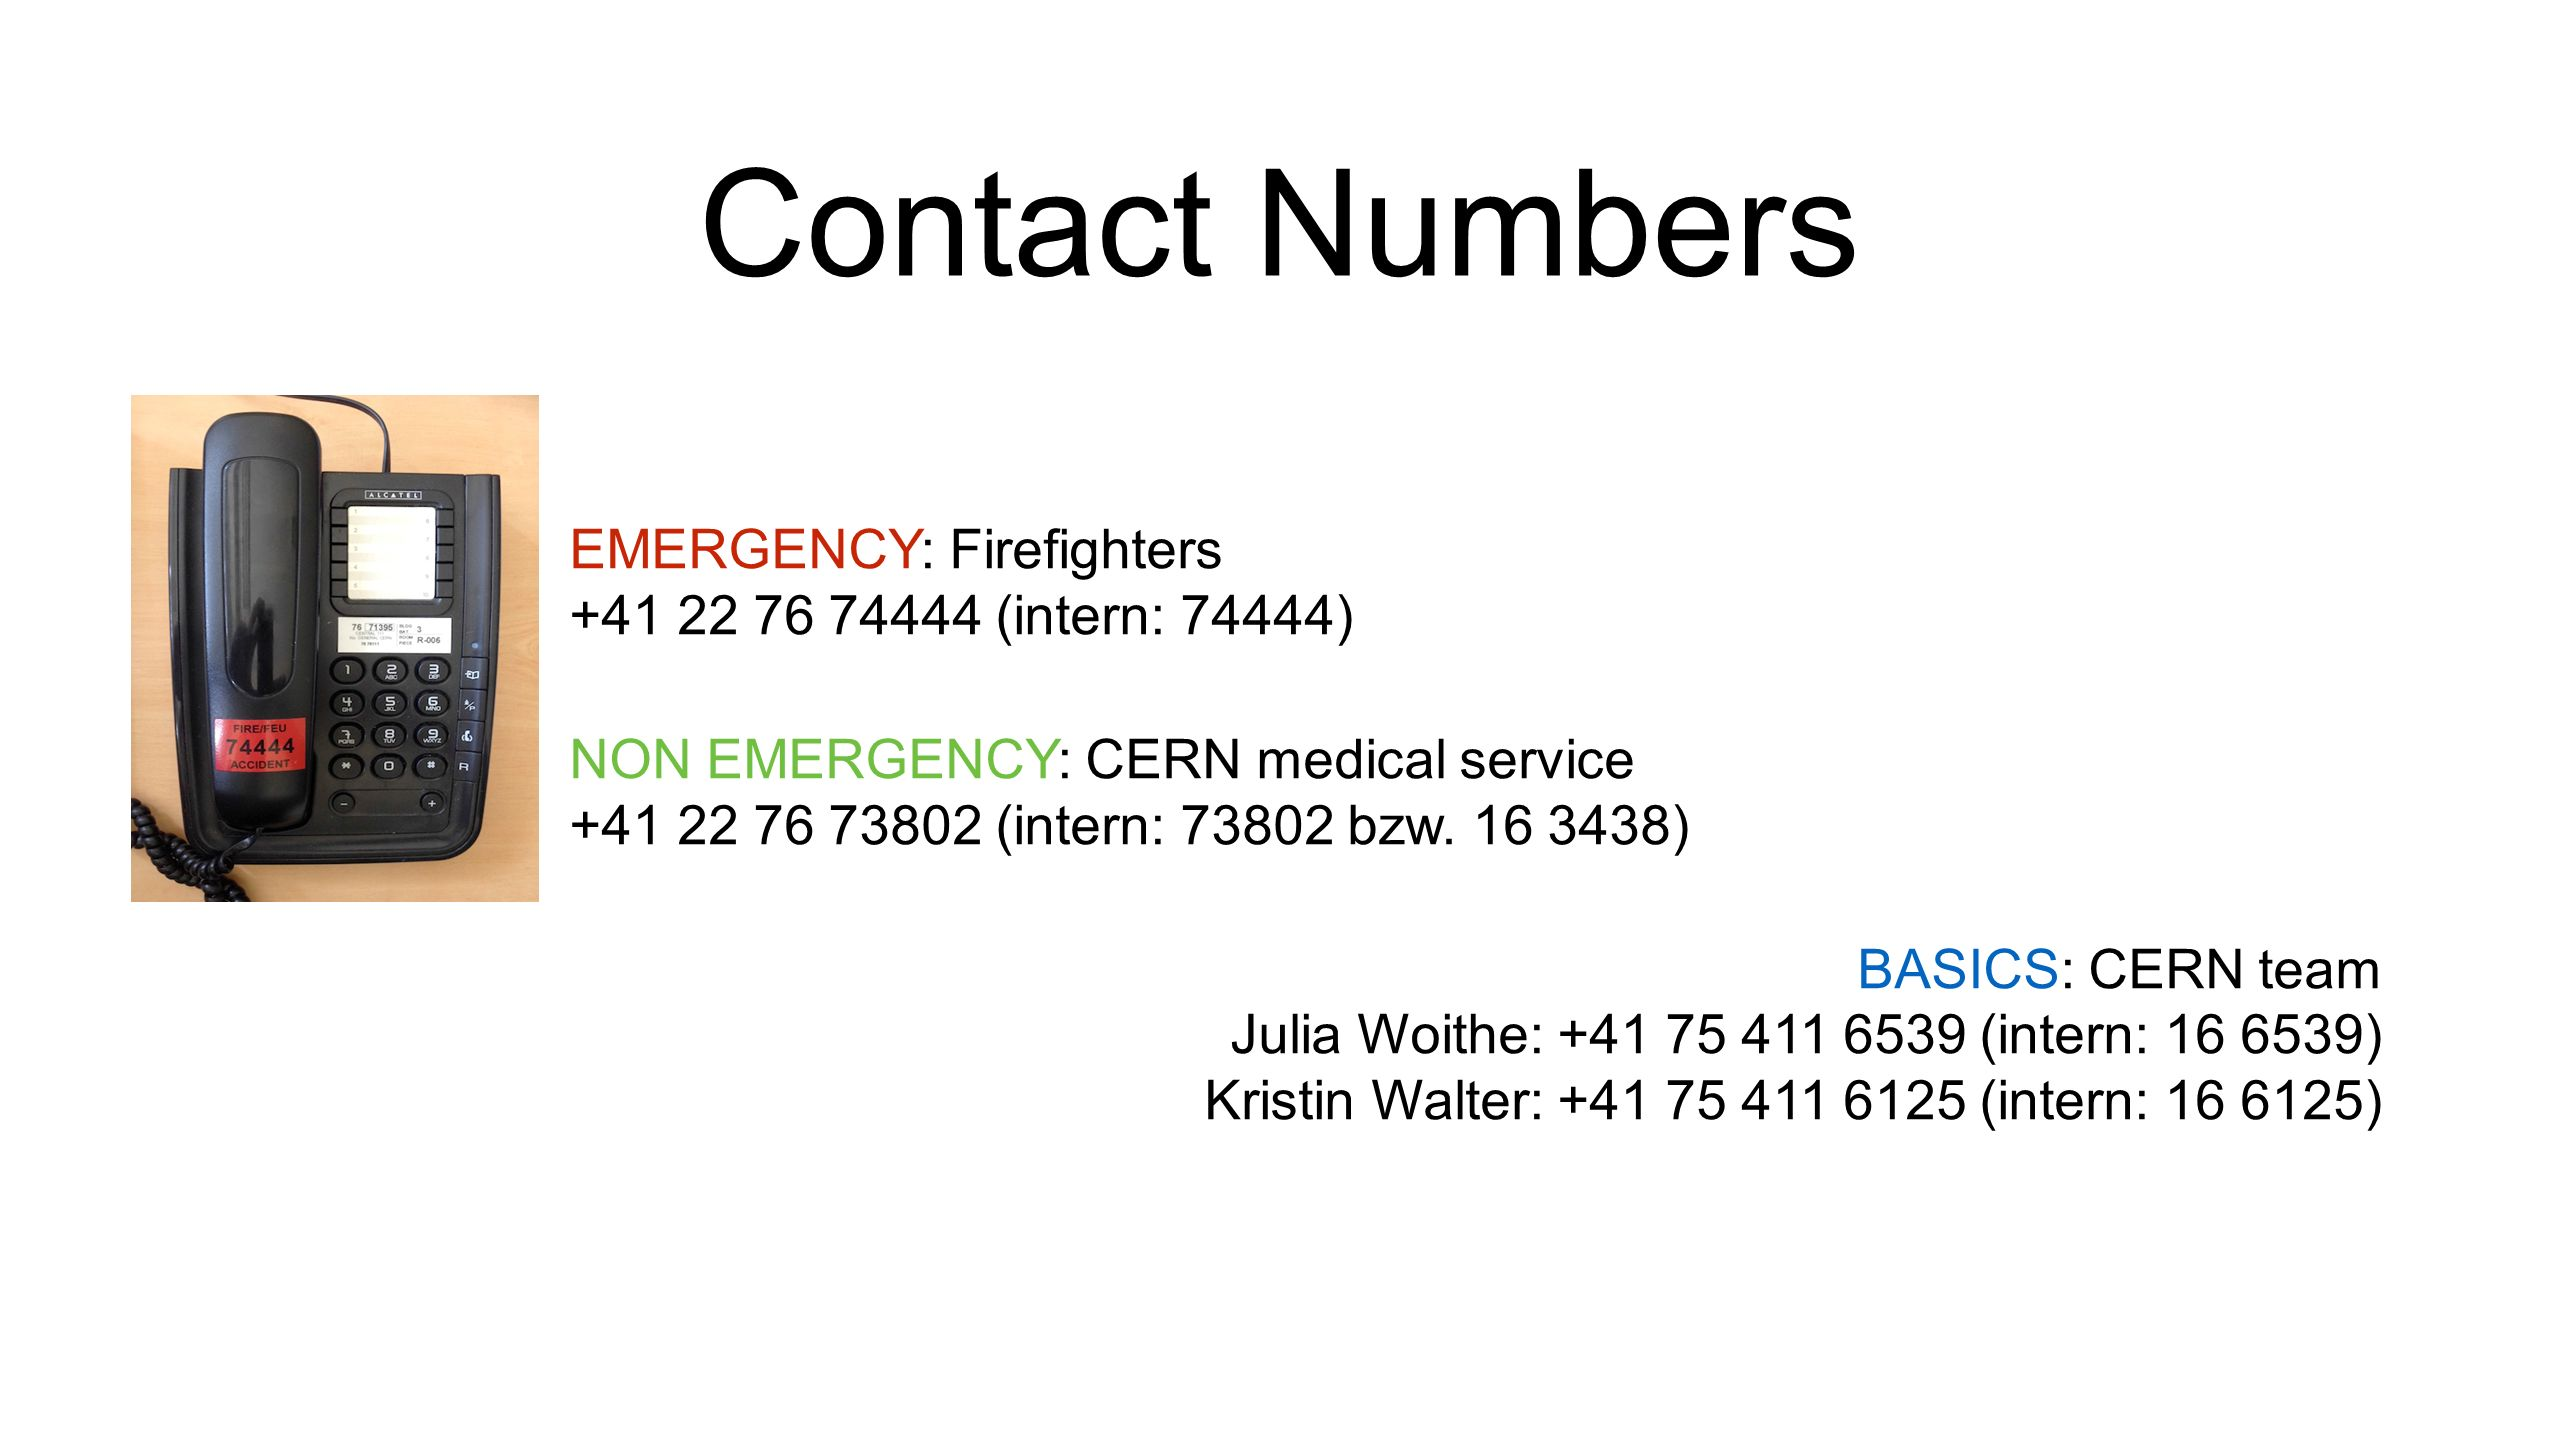 Contact Numbers EMERGENCY: Firefighters +41 22 76 74444 (intern: 74444) NON EMERGENCY: CERN medical service +41 22 76 73802 (intern: 73802 bzw.